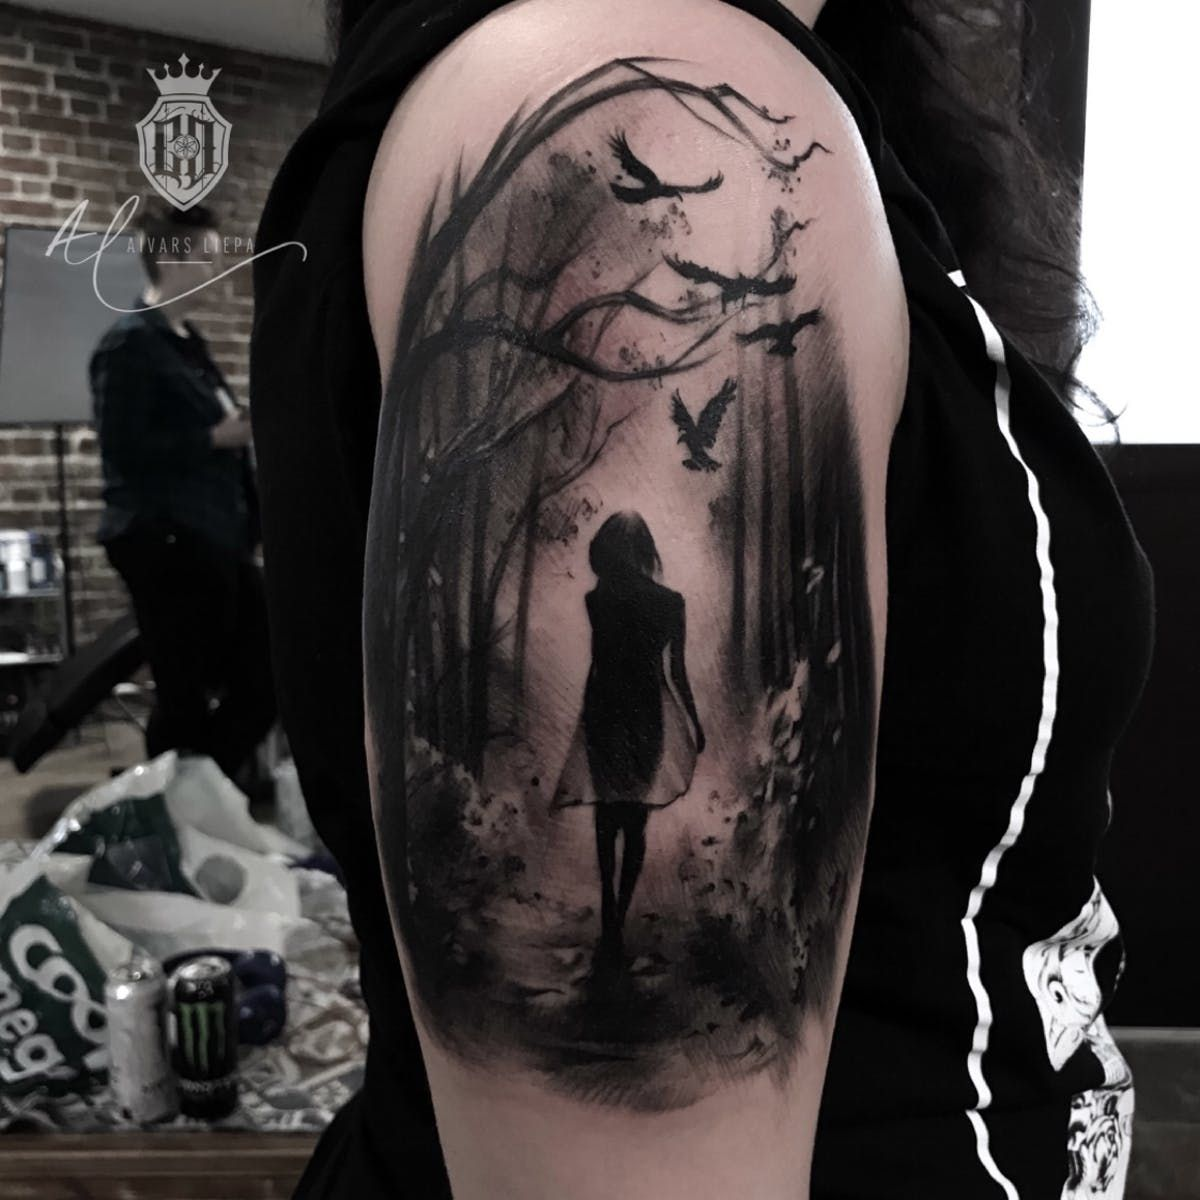 Girl In A Forest Forest Girl Oslo Norway Tattoos For Women Half Sleeve Tattoos Tattoos For Women